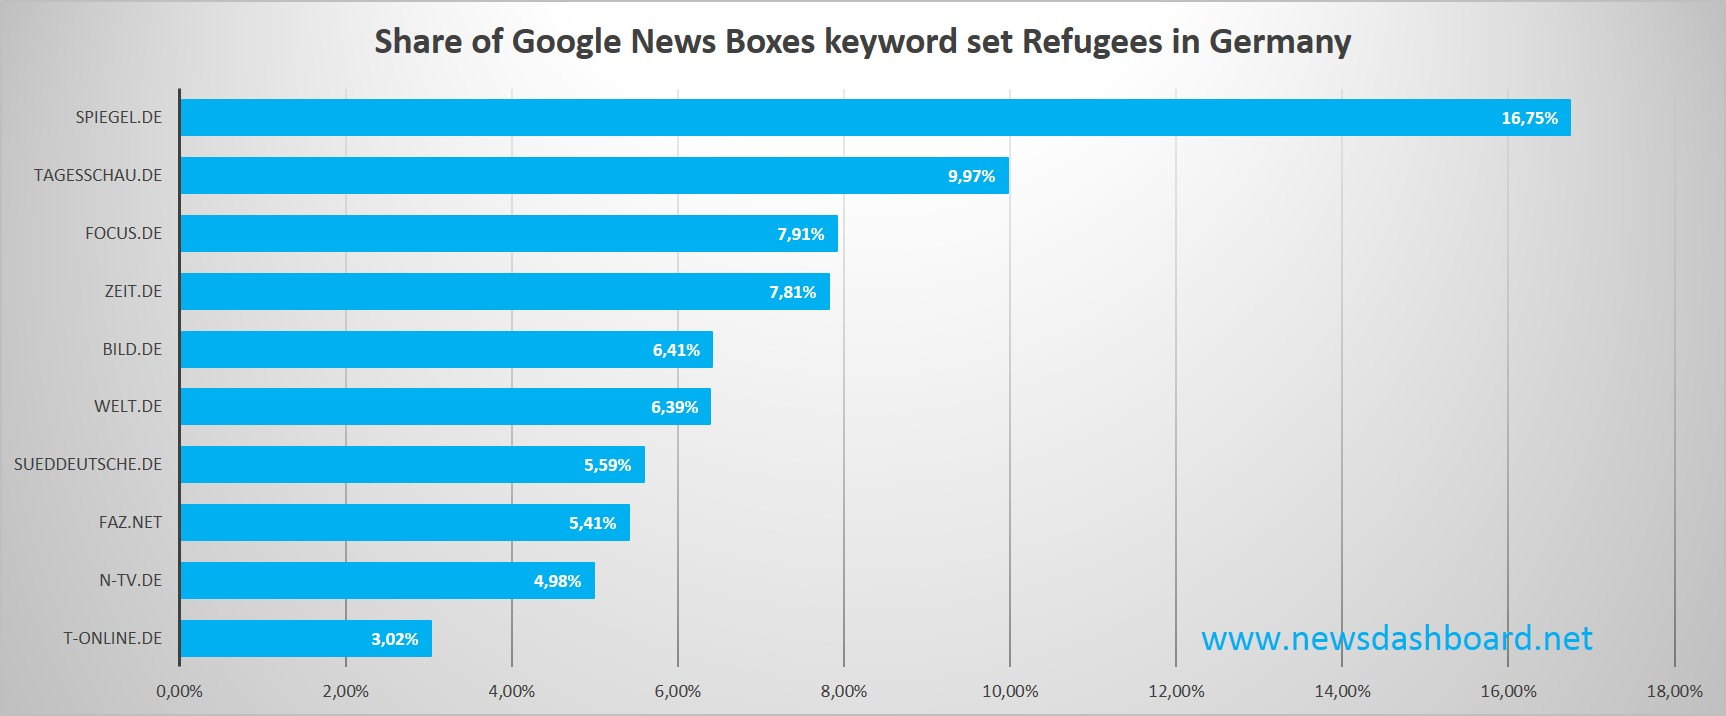 Spiegel has a over sixteen percent share of Google News Boxes for the refugee related keywords